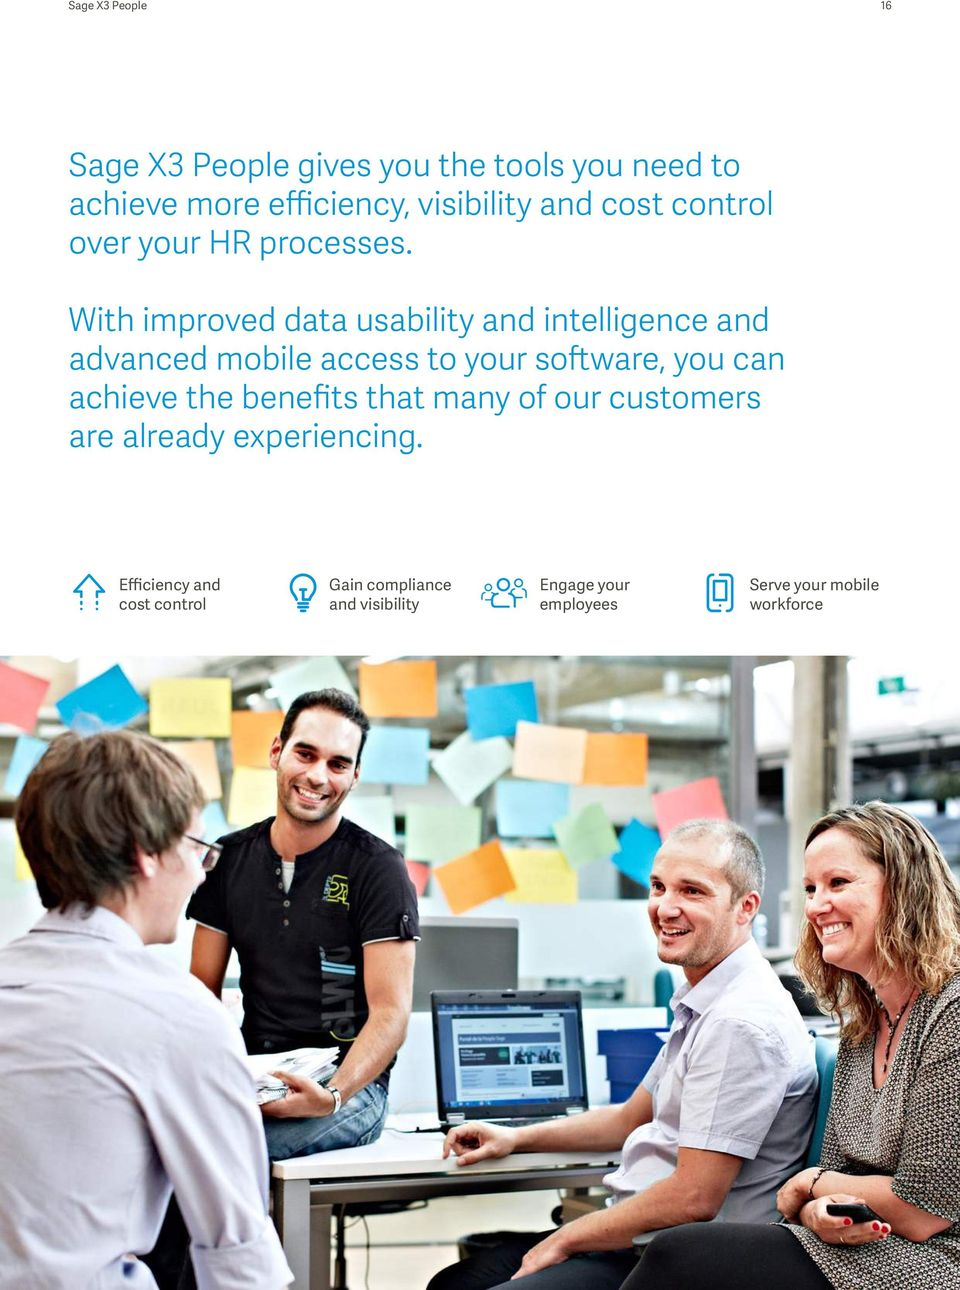 With improved data usability and intelligence and advanced mobile access to your software, you can